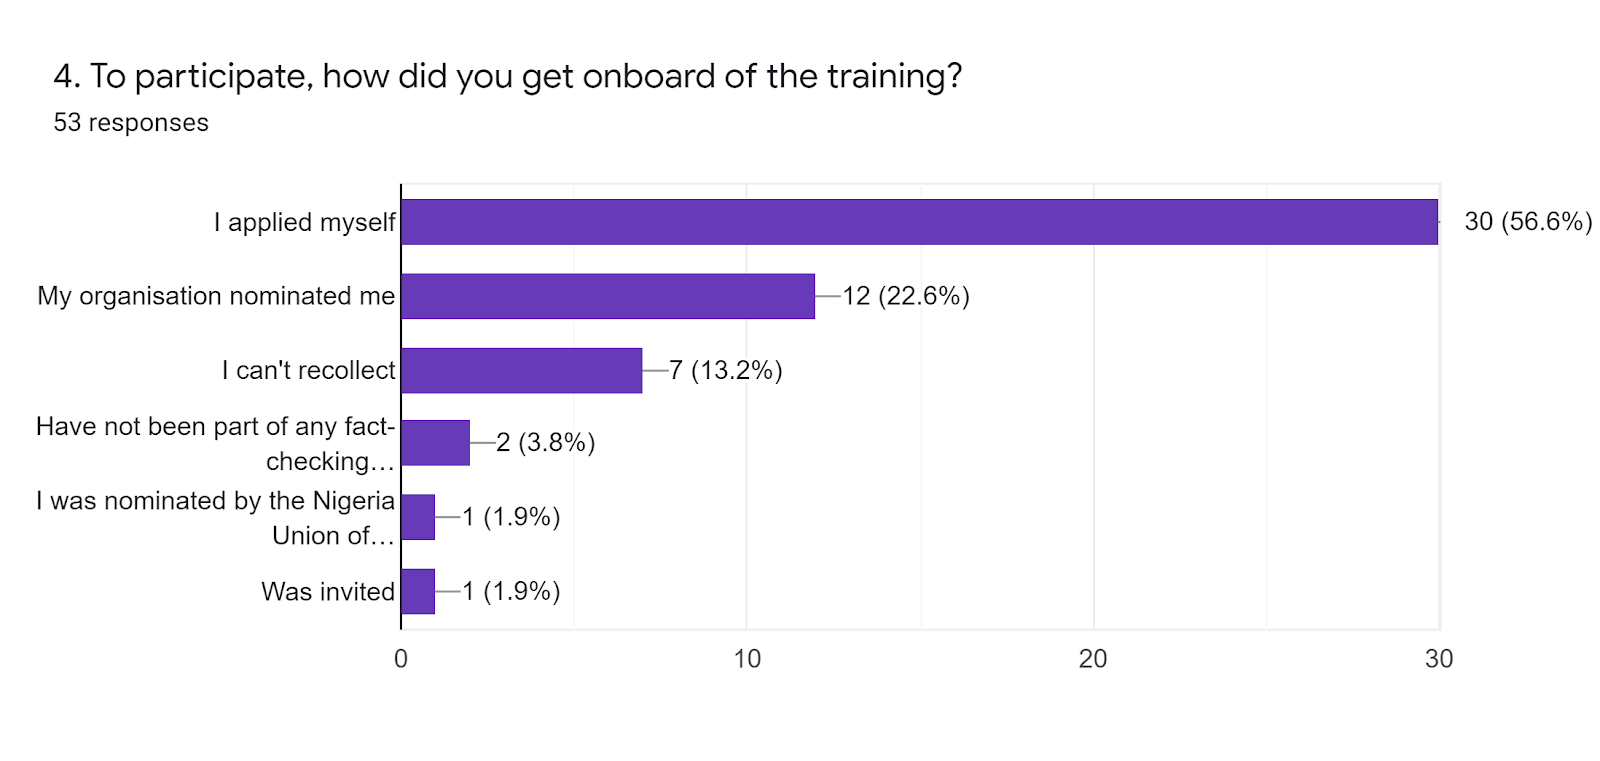 Forms response chart. Question title: 4. To participate, how did you get onboard of the training?. Number of responses: 53 responses.